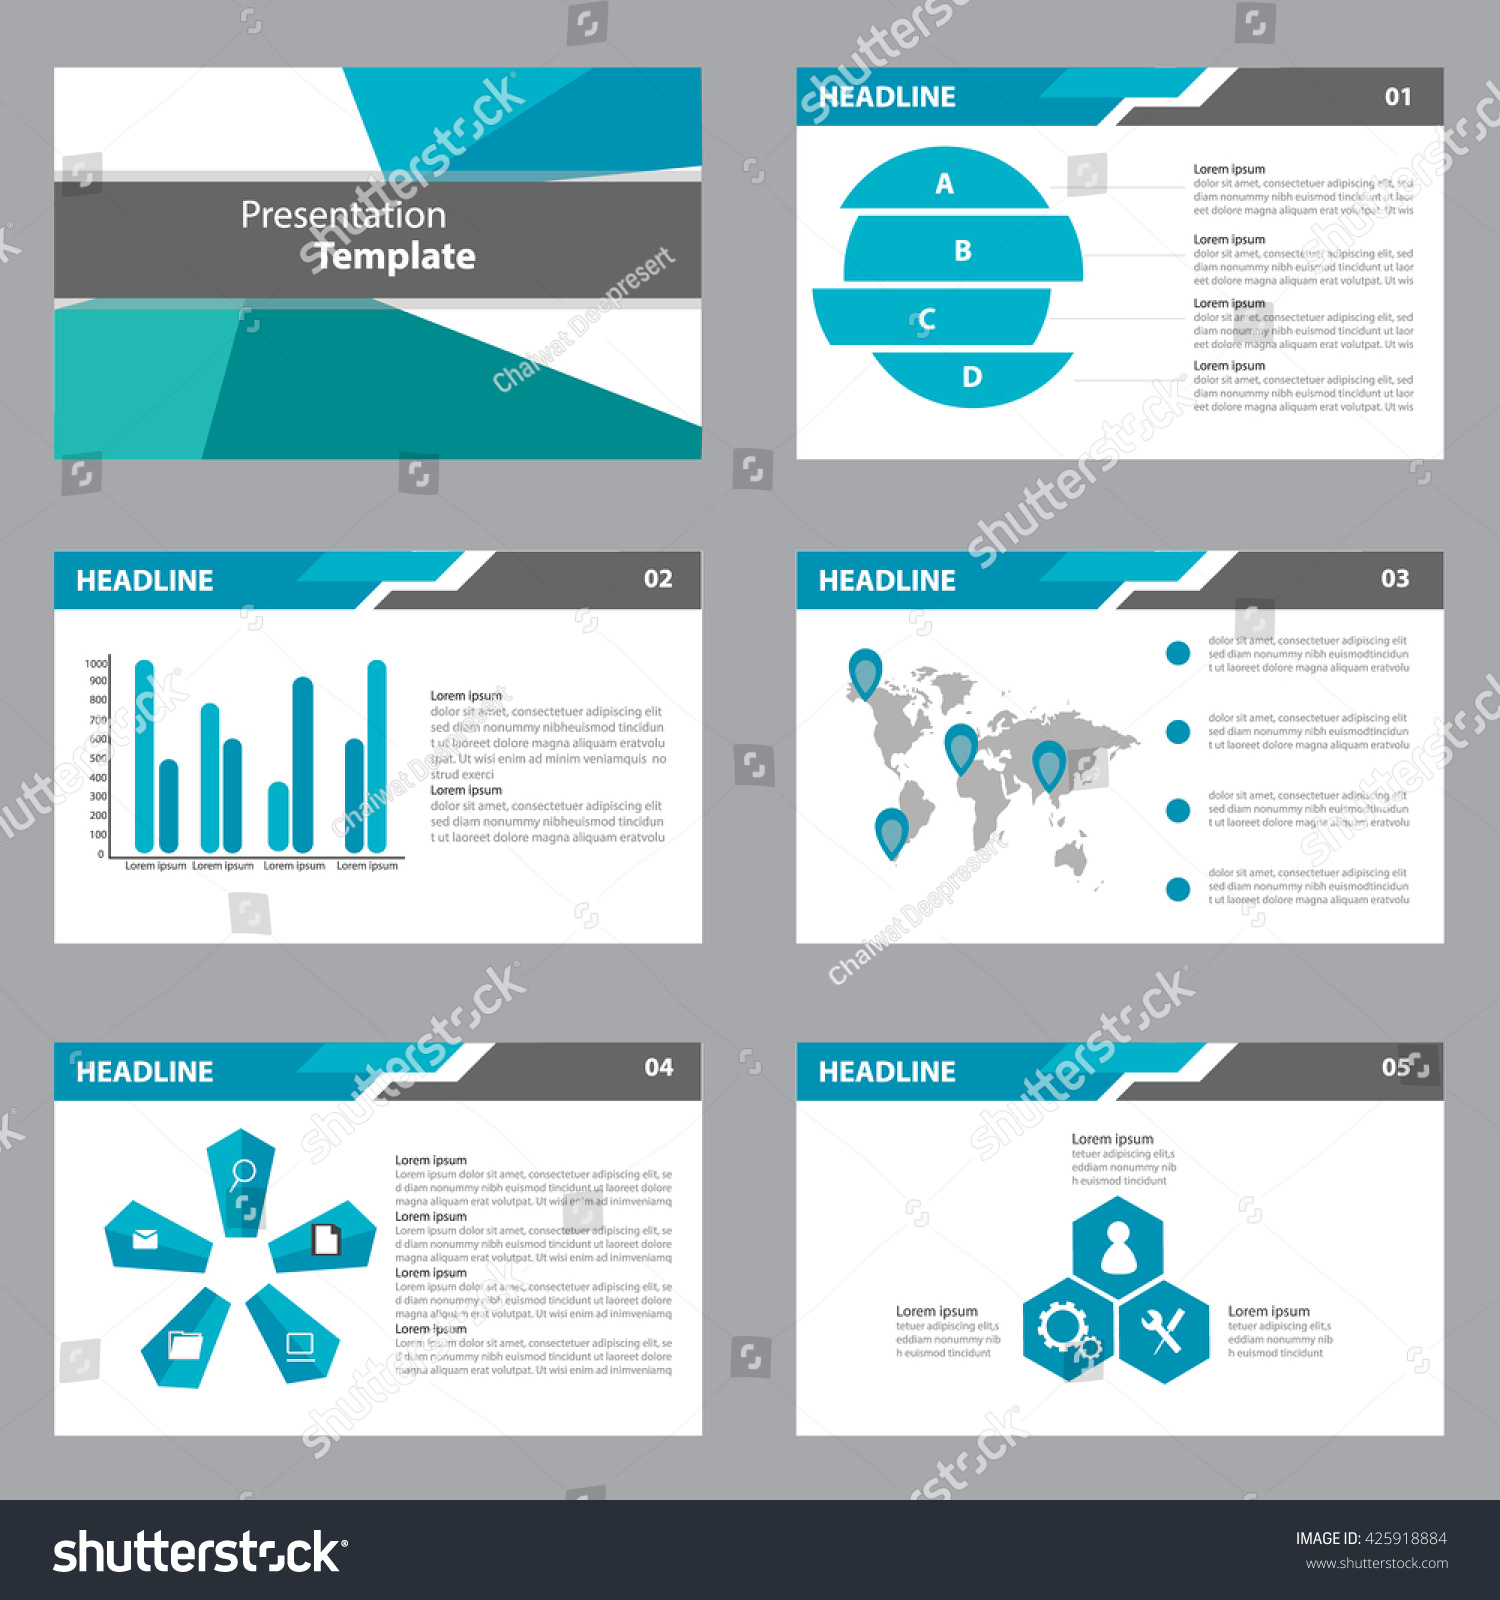 infographic brochure template - blue black presentation template infographic elements